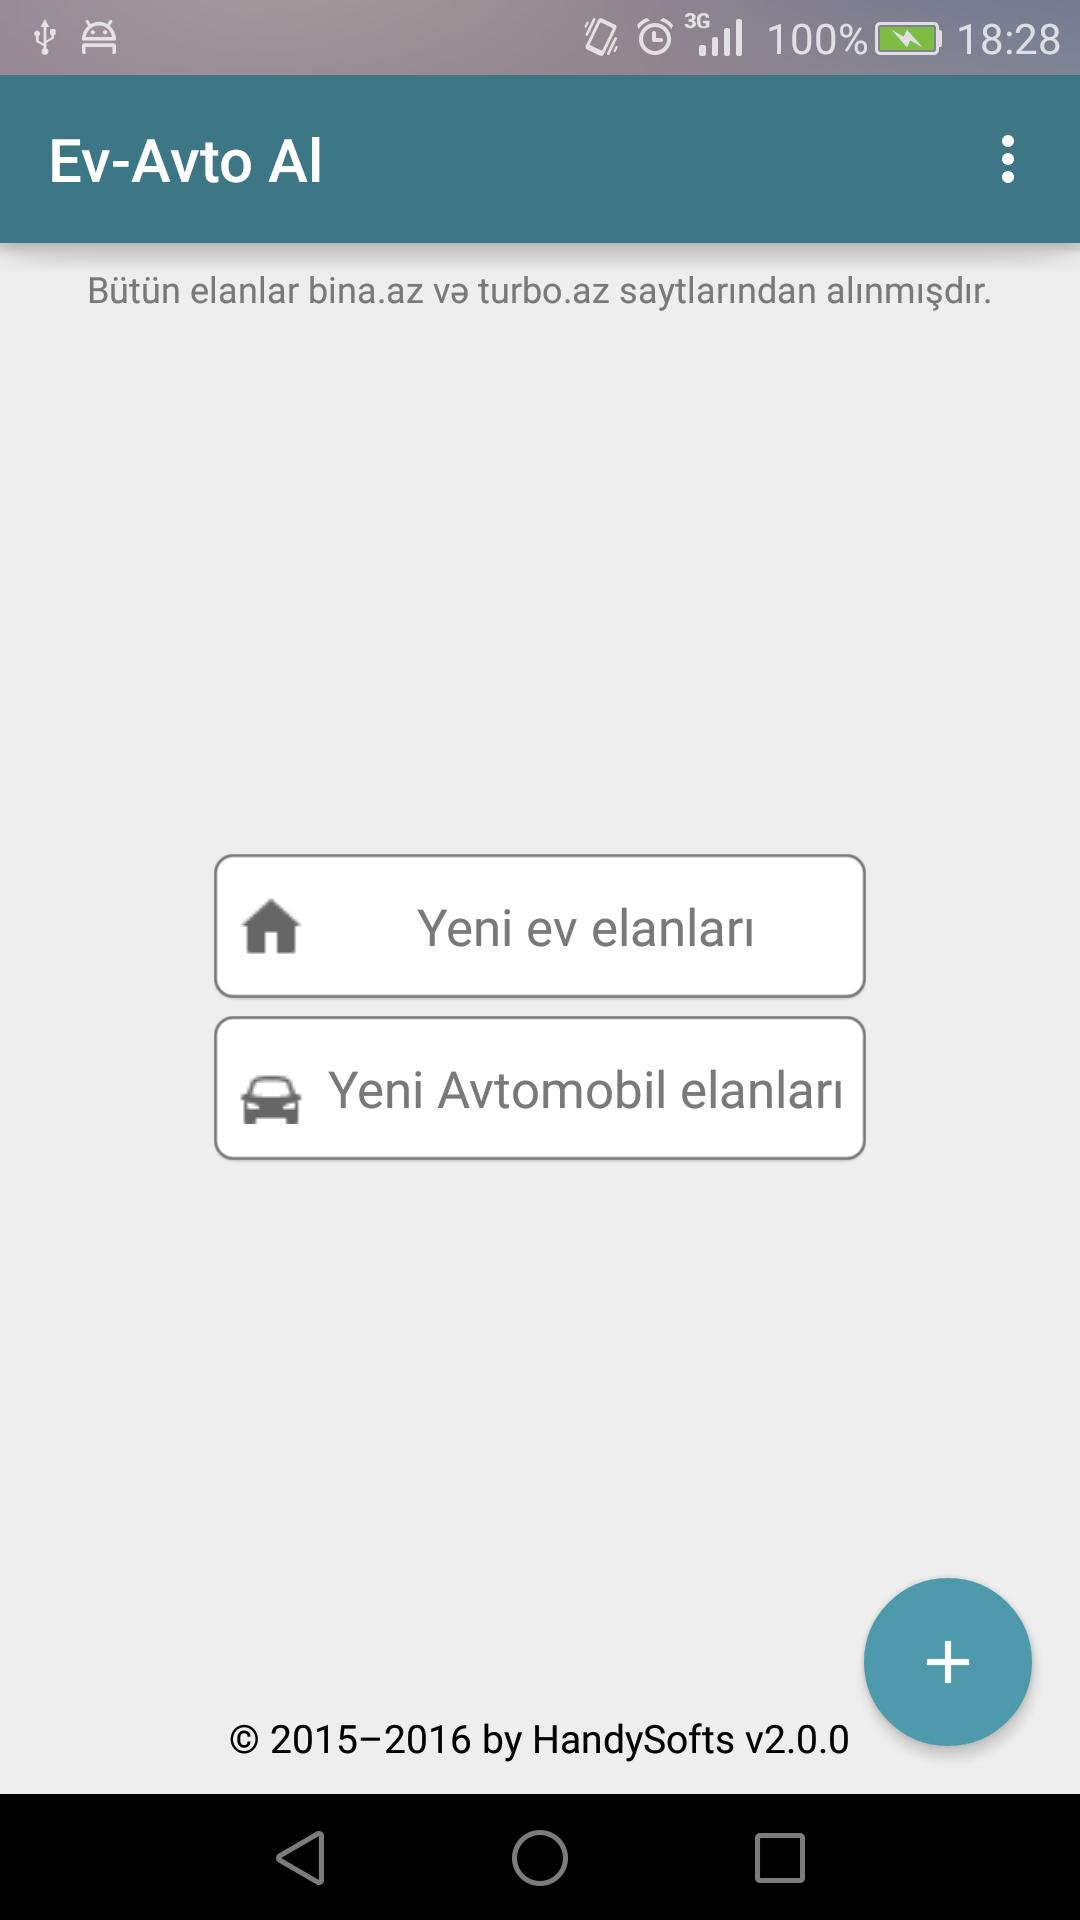 Ev-Avto Al (bina az/turbo az) for Android - APK Download